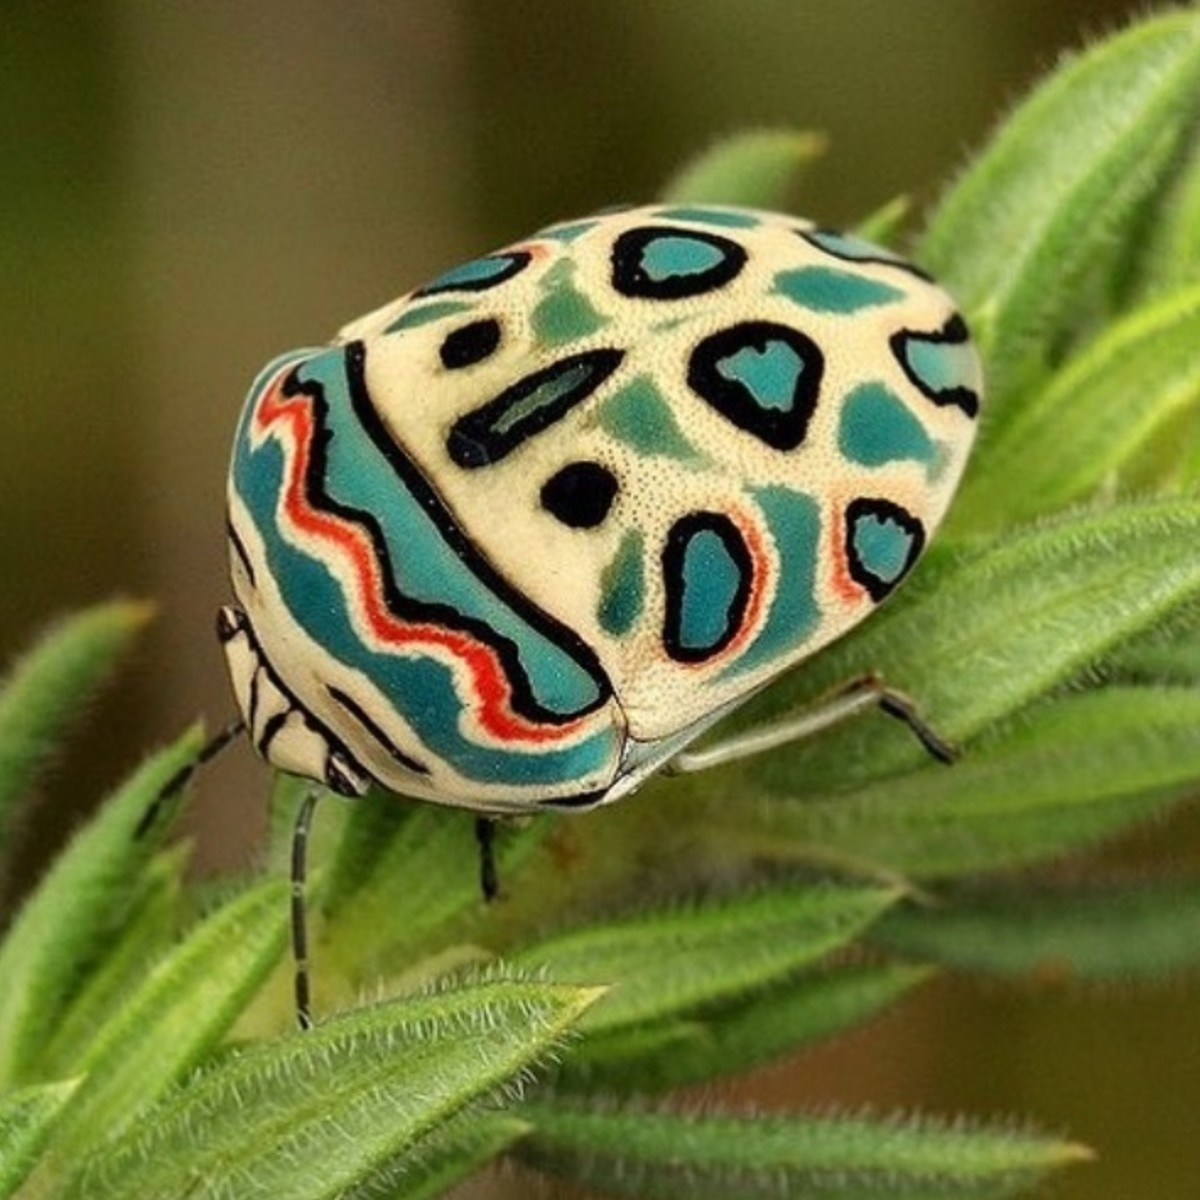 Top 10 Most Beautiful Insects in the World